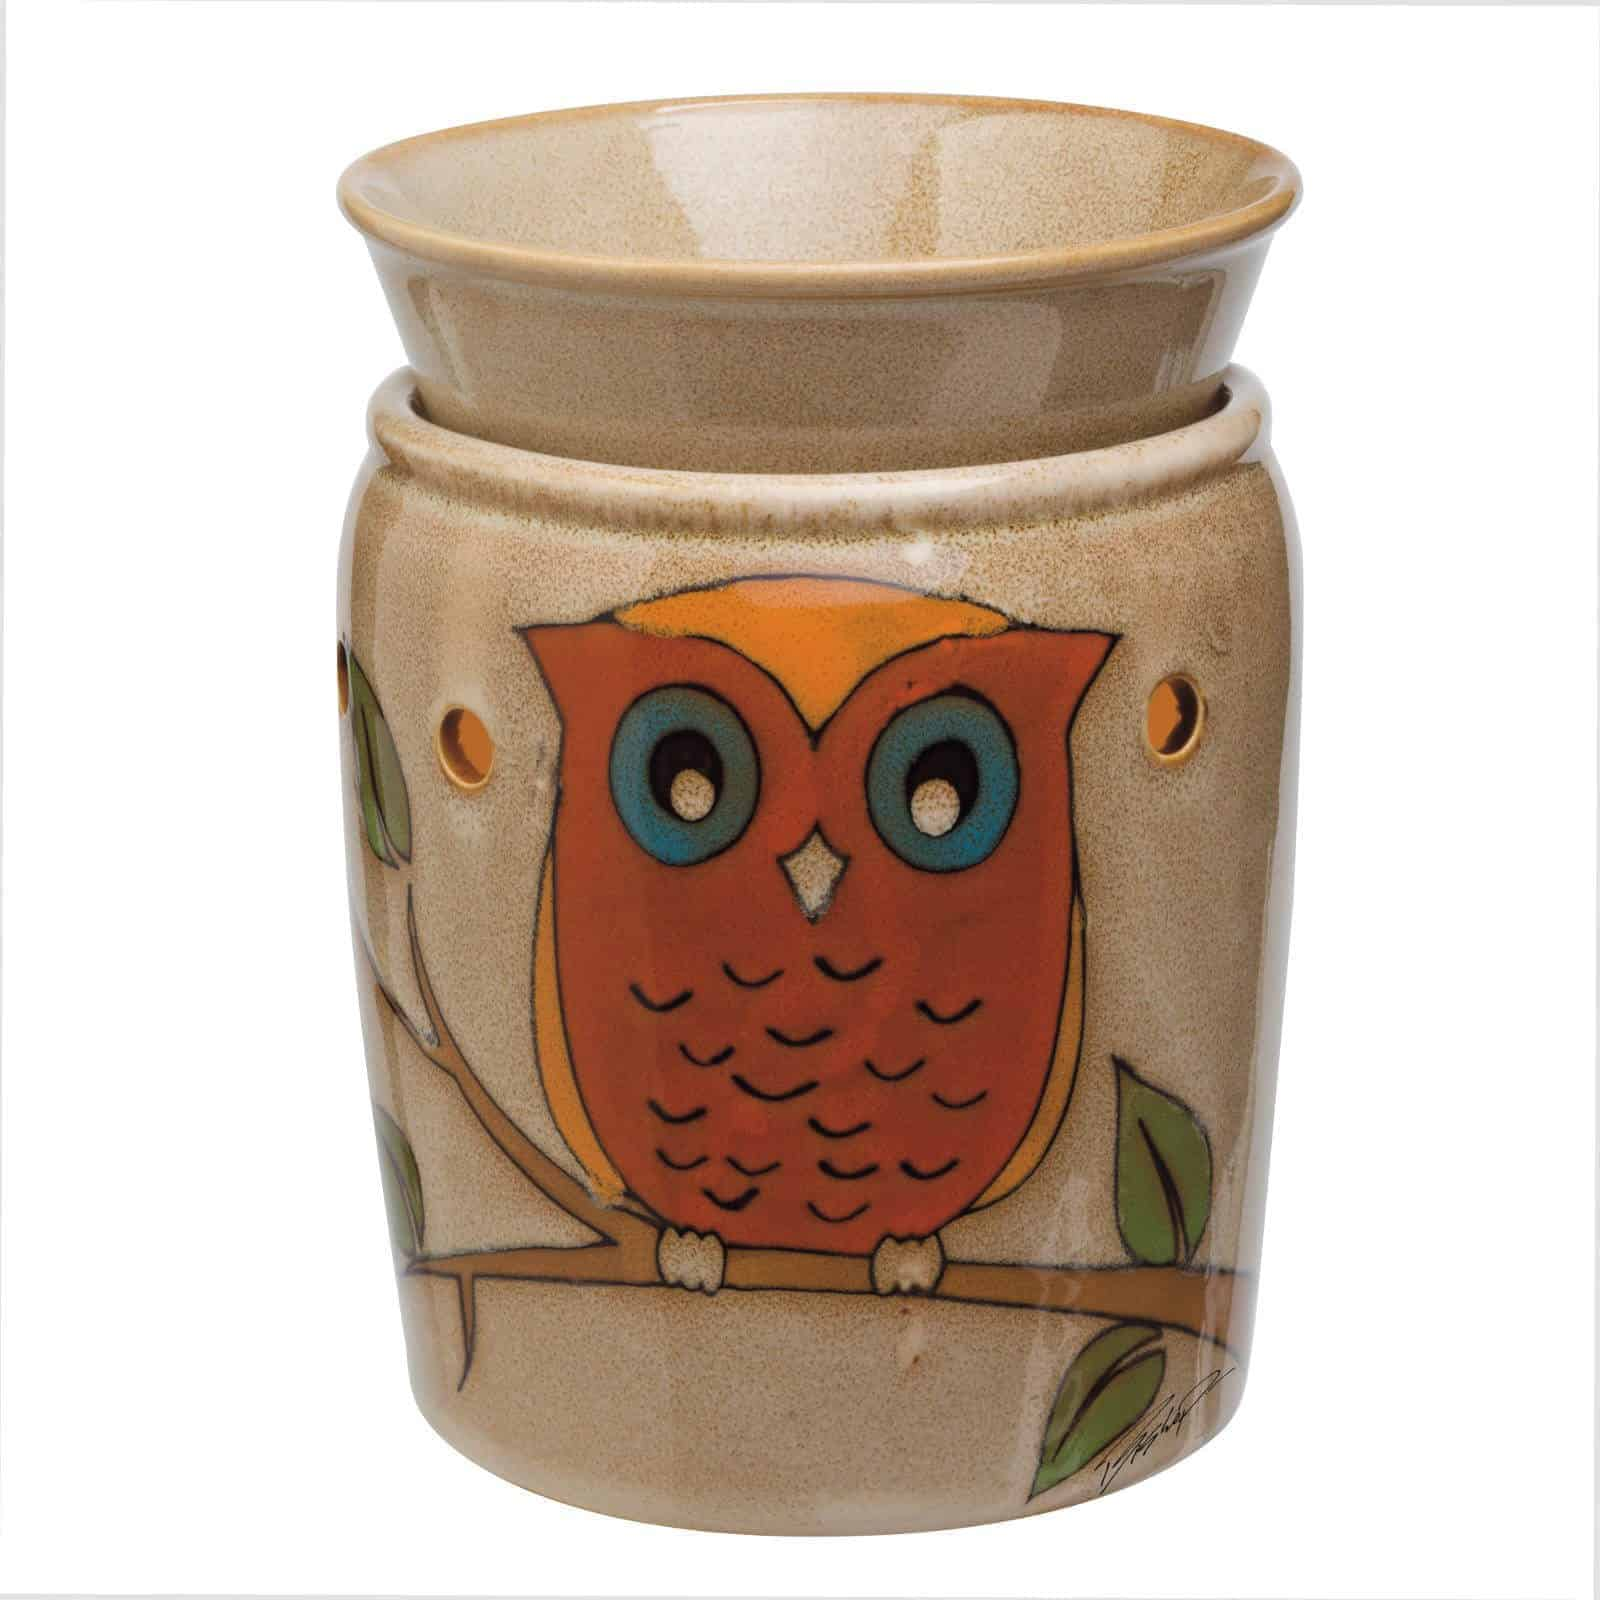 Owlet Scentsy Owl Candle Warmer Buy Scentsy Online